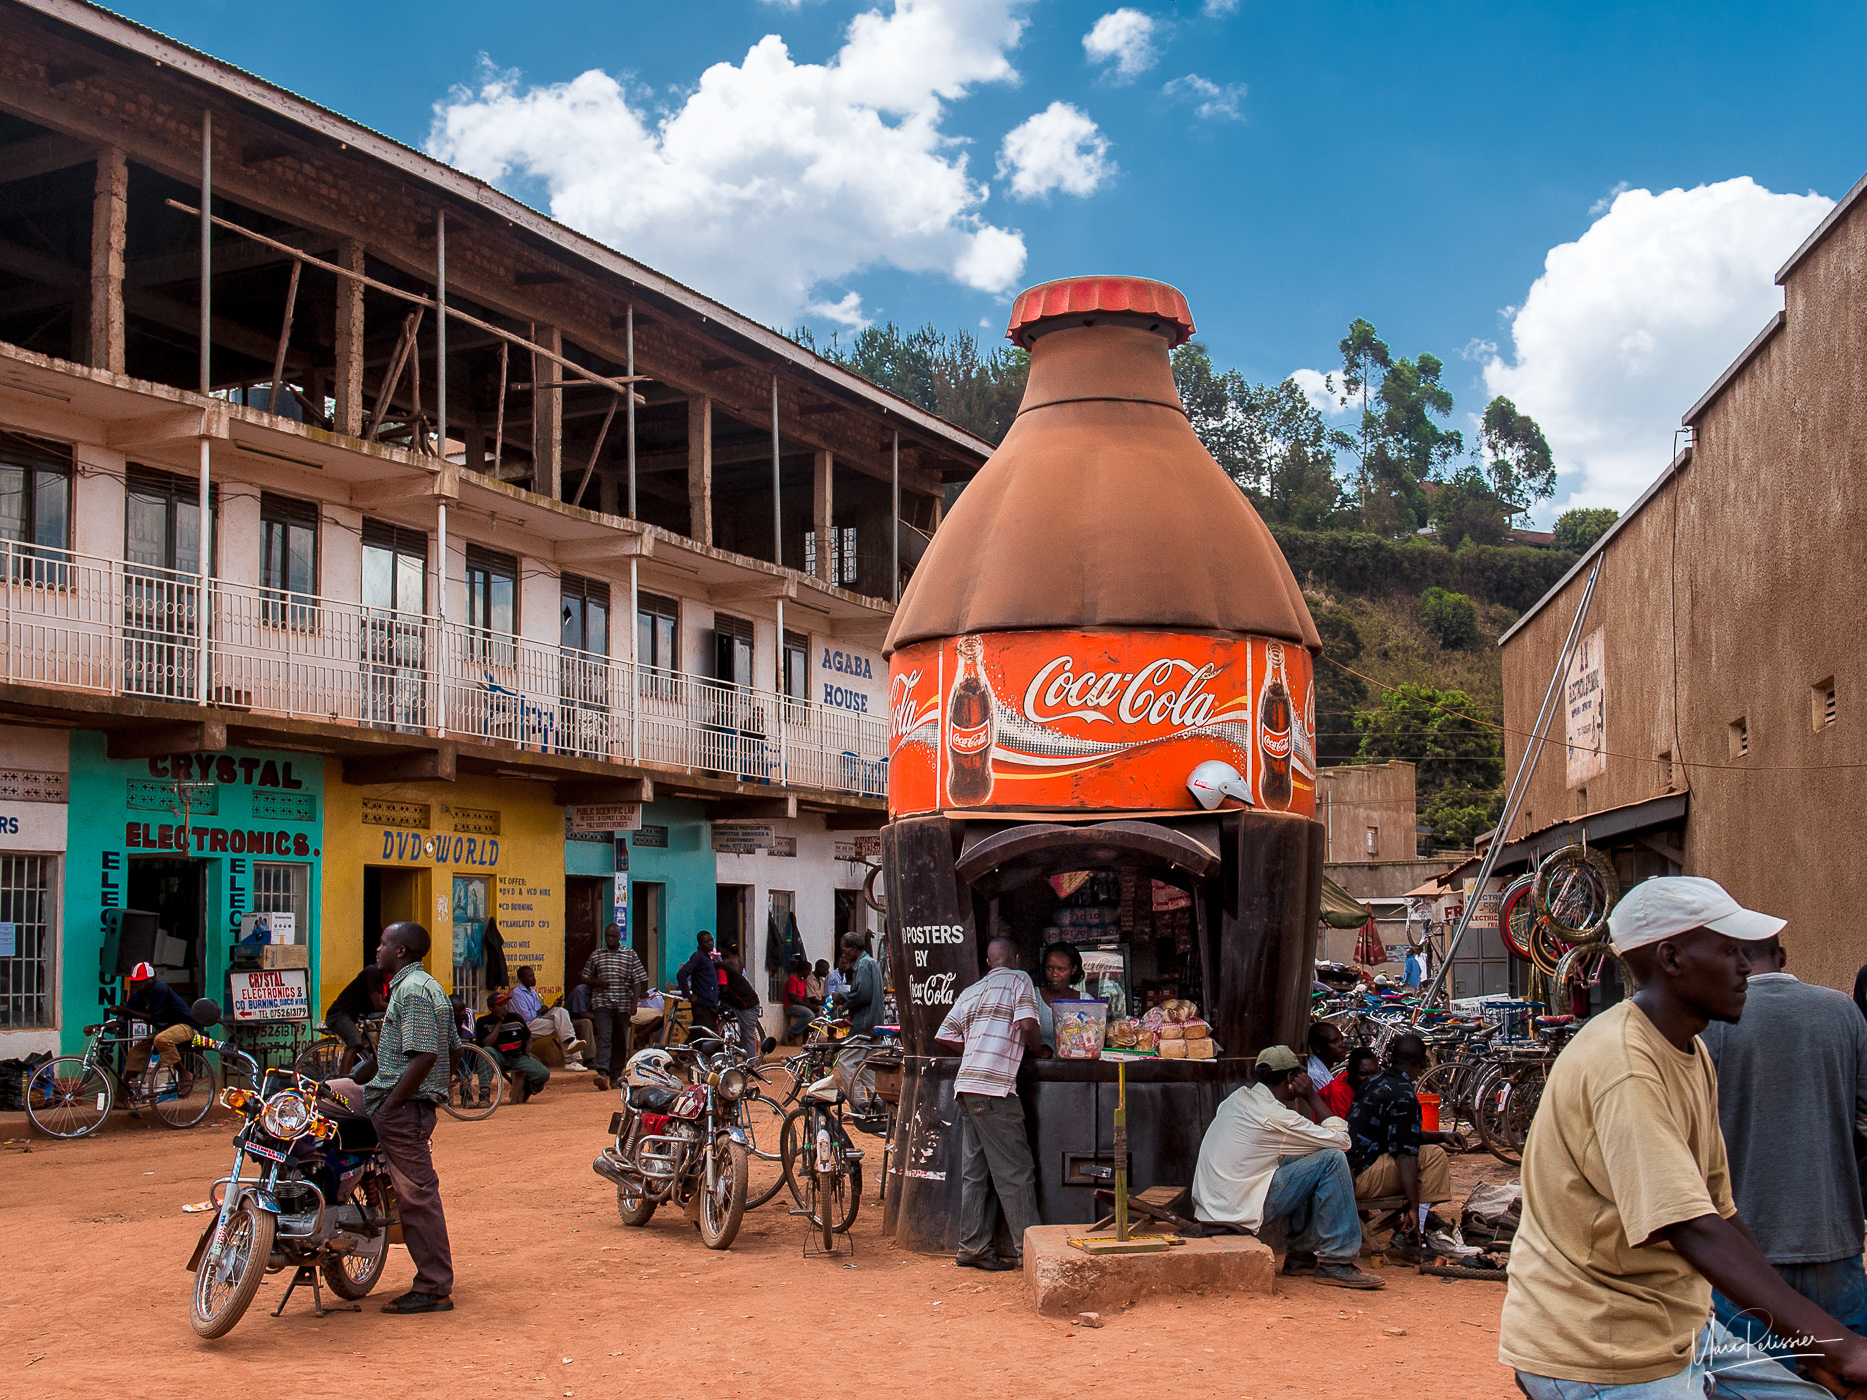 In the coca bottle, Uganda